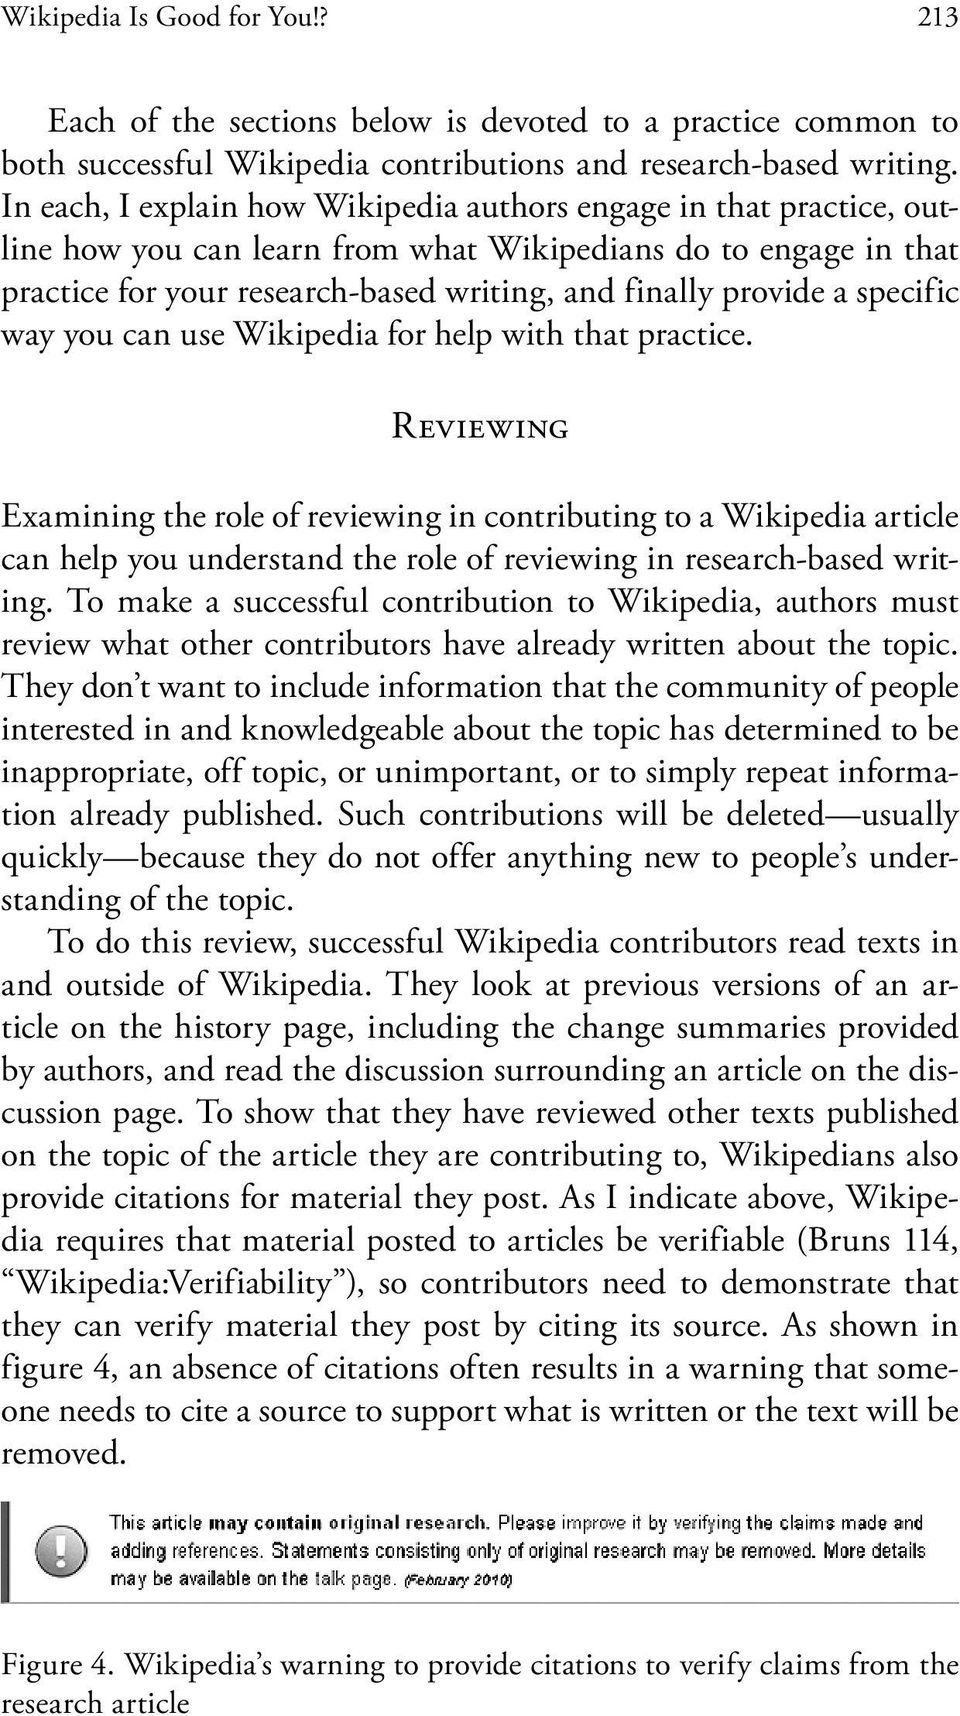 specific way you can use Wikipedia for help with that practice.